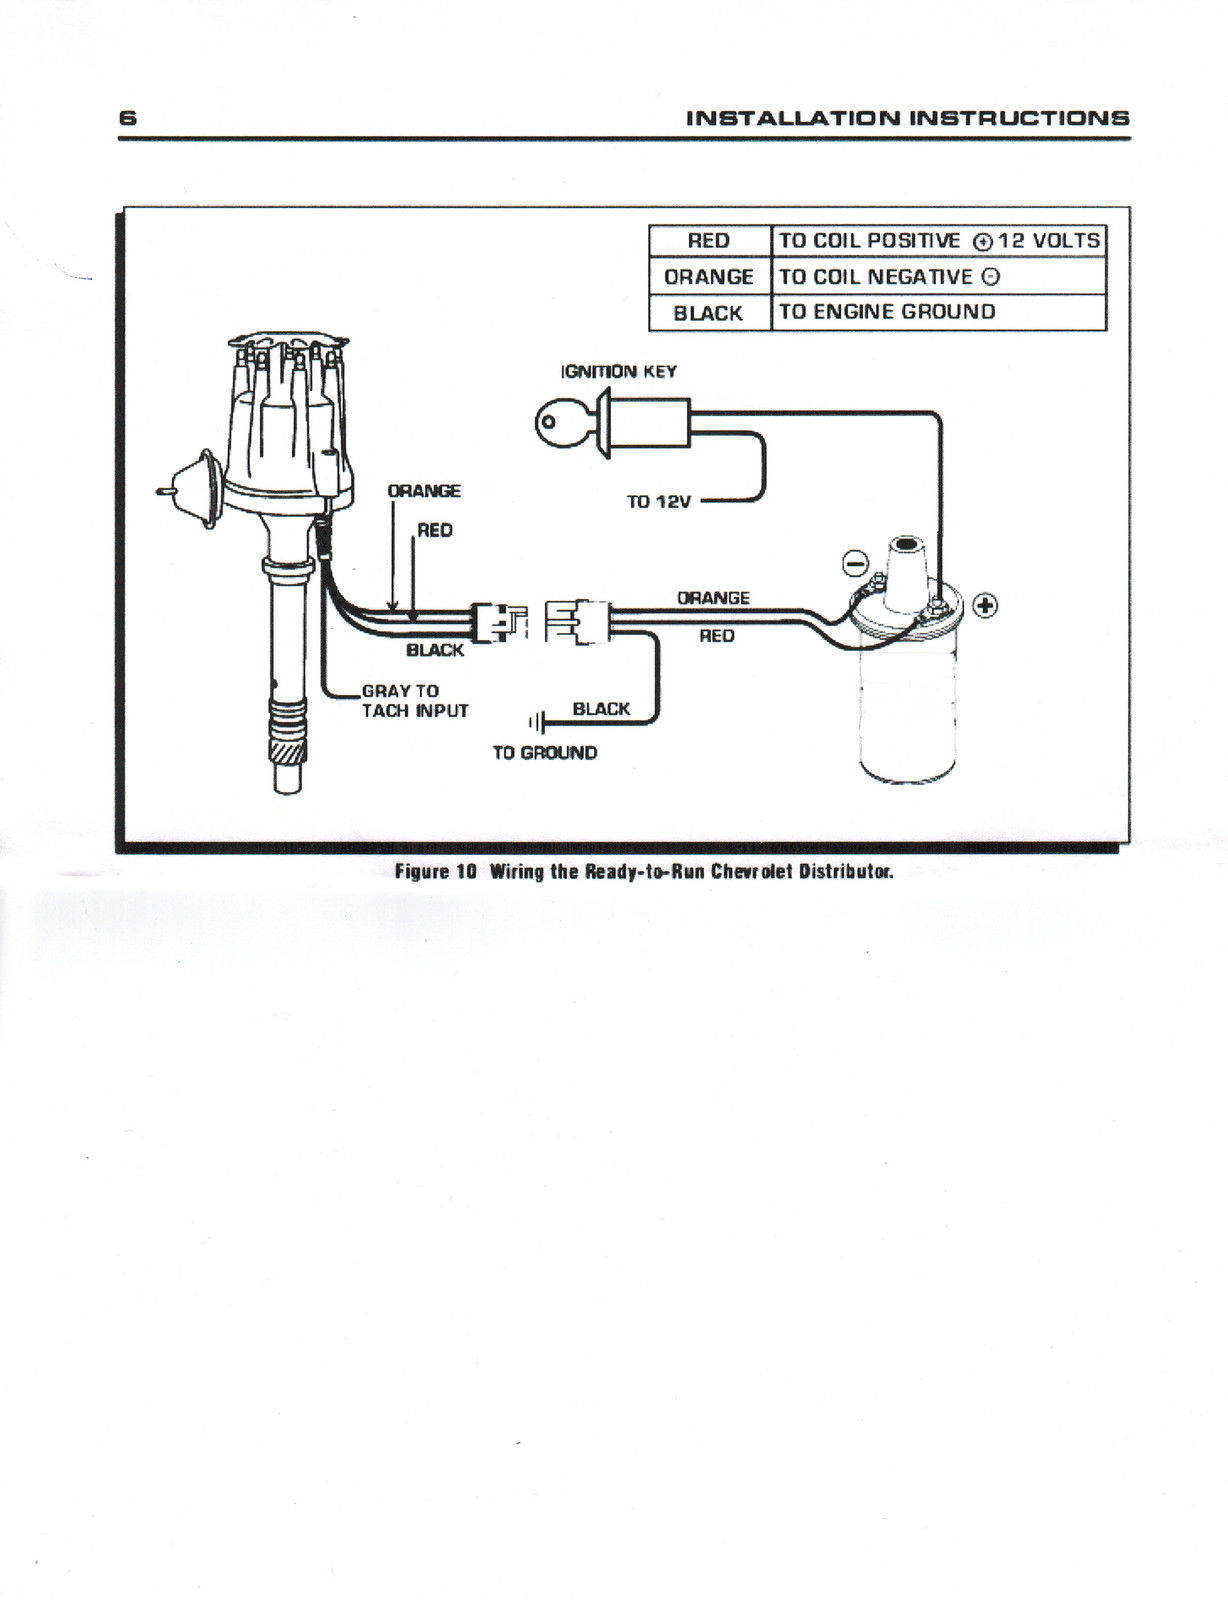 [DIAGRAM_5LK]  Small Cap CHEVY INLINE 6 Cylinder 194, 216 & 235 RED HEI Distributor Black  Coil - SwapMeetParts | Gm Distributor Wiring Diagram |  | SwapMeetParts